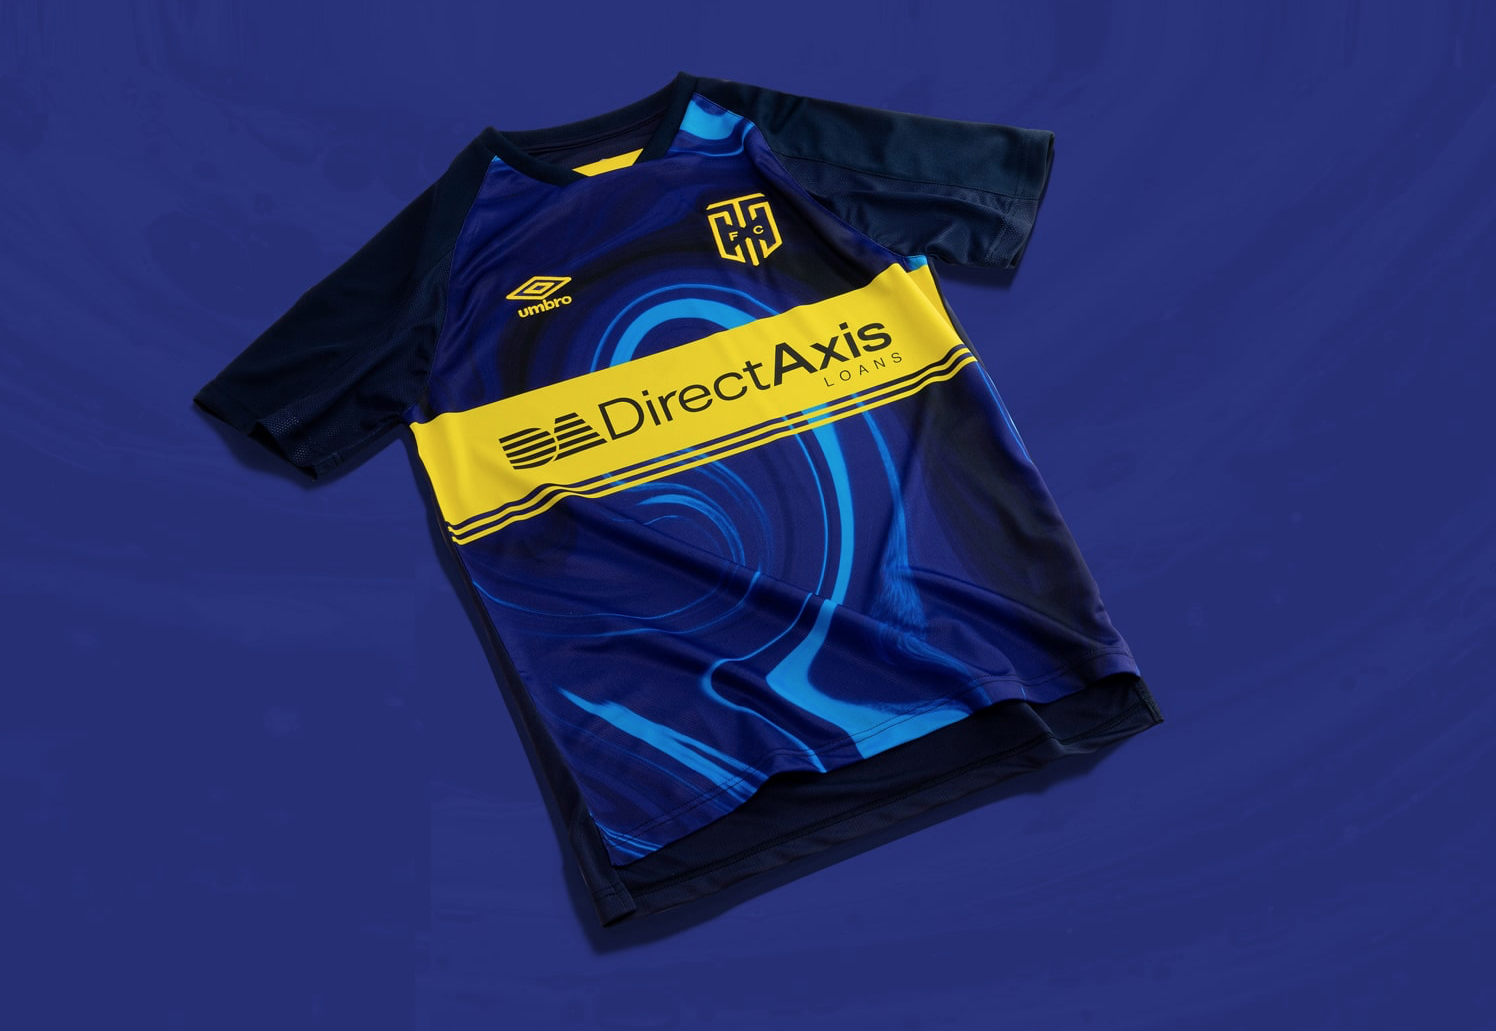 Cape Town City unveils its new 2021/22 home & away kits